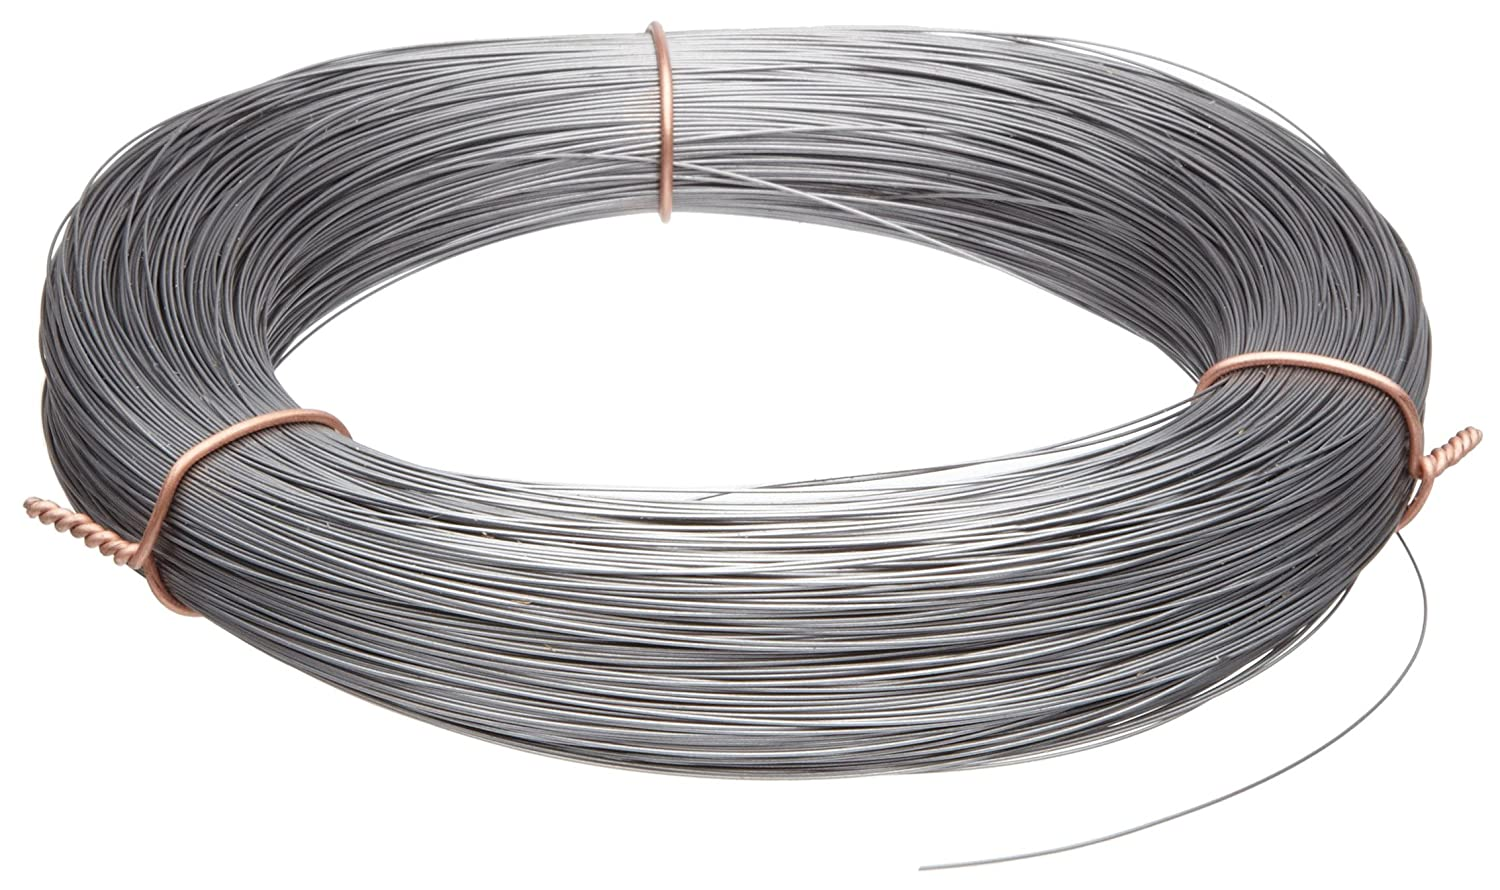 High Carbon Steel Wire, Mill Finish #2B (Smooth) Finish, Grade #2B Smooth, Full Hard Temper, Meets ASTM A228 Specifications, 0.022